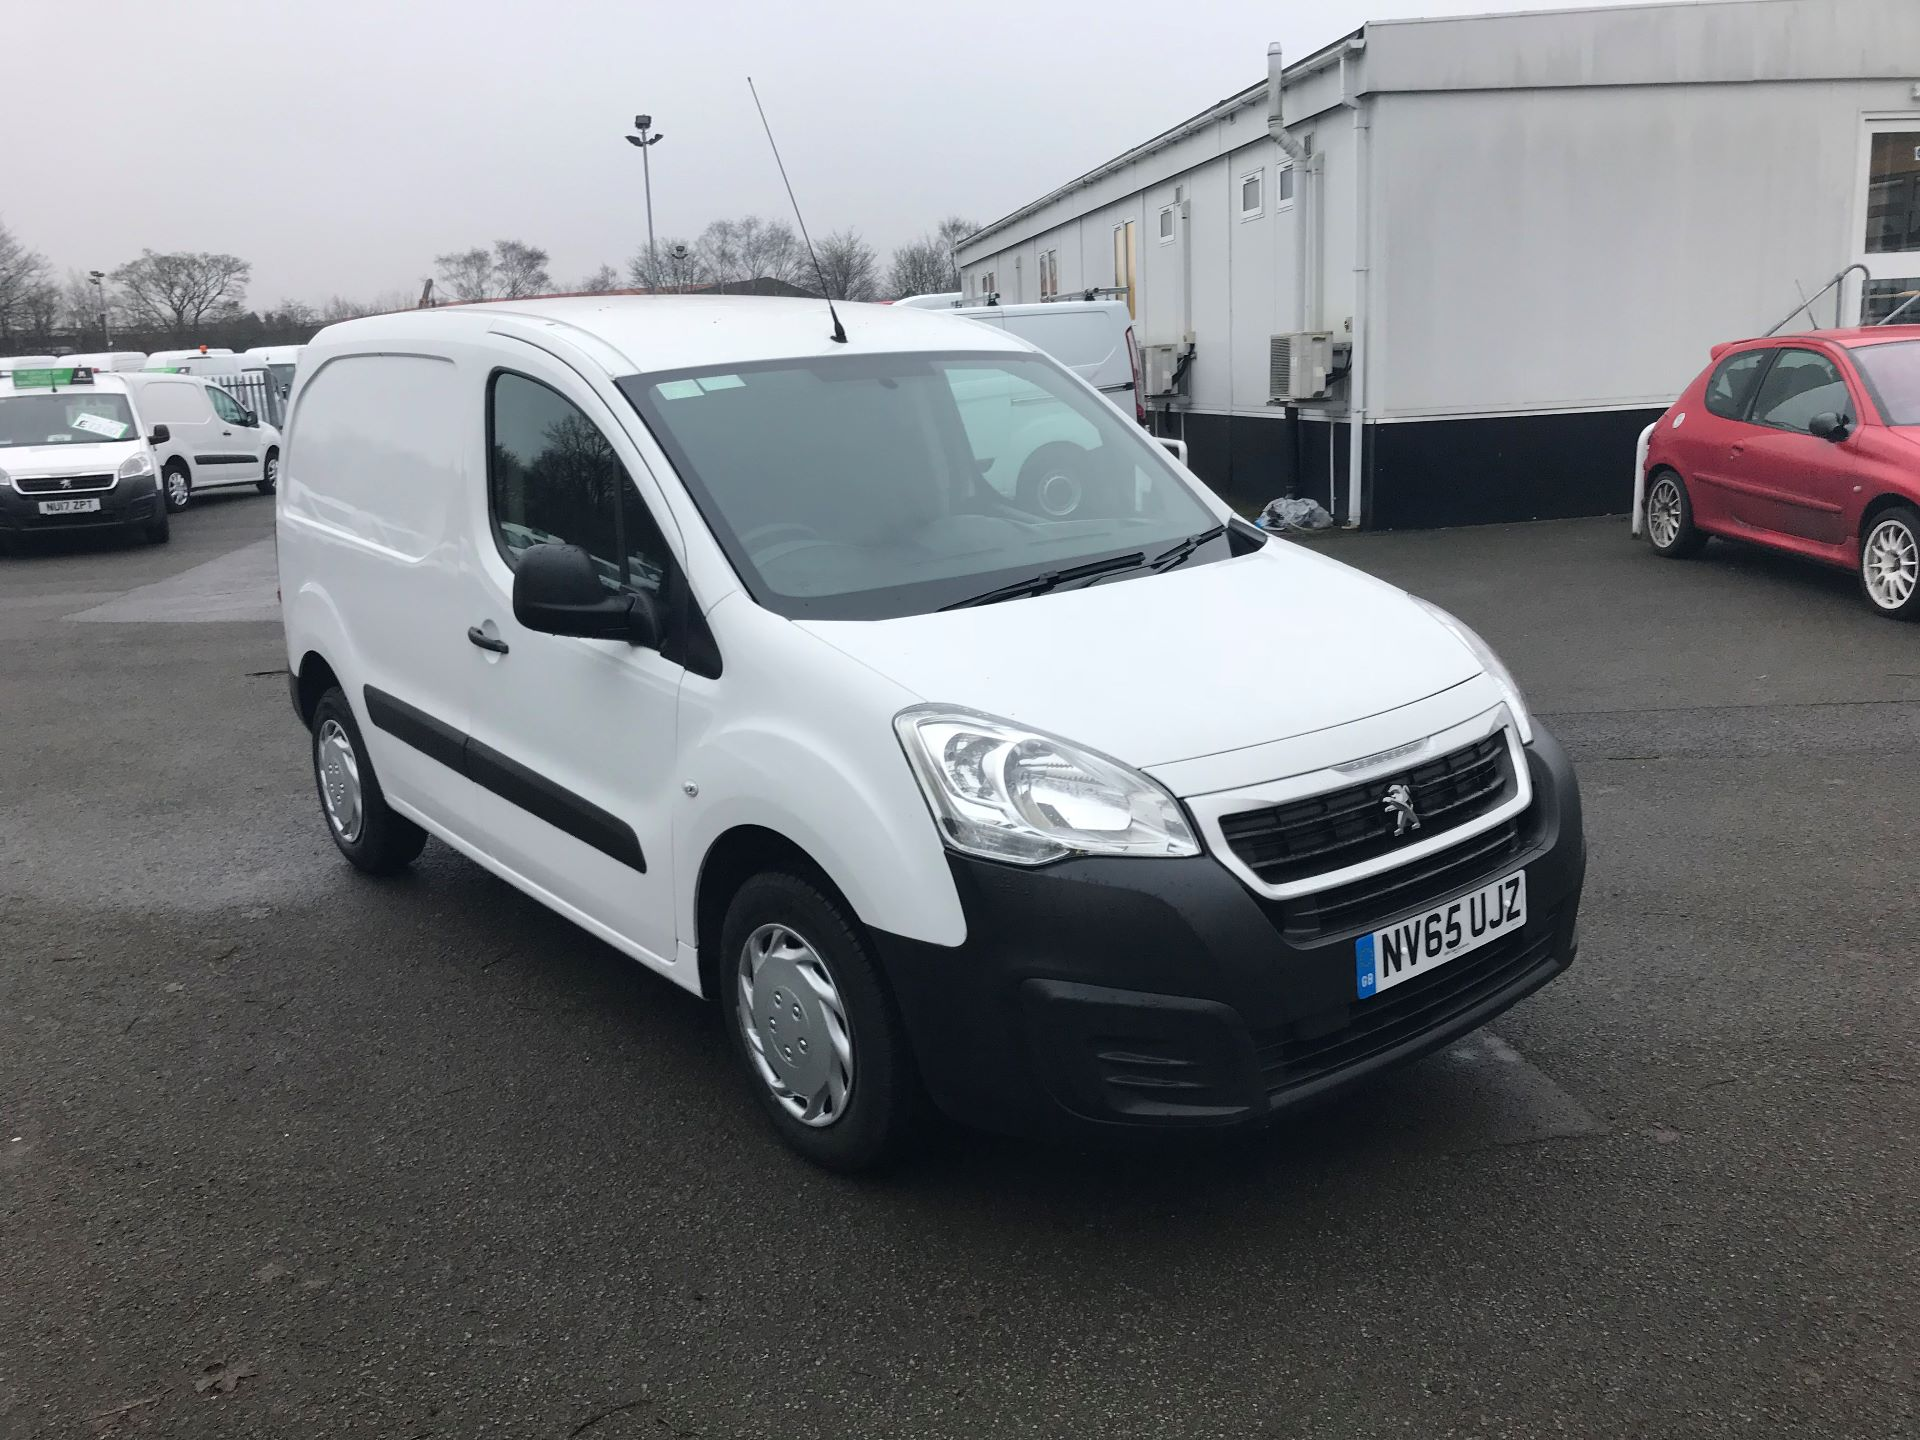 2016 Peugeot Partner L1 850 S 1.6 92PS (SLD) EURO 5 (NV65UJZ)